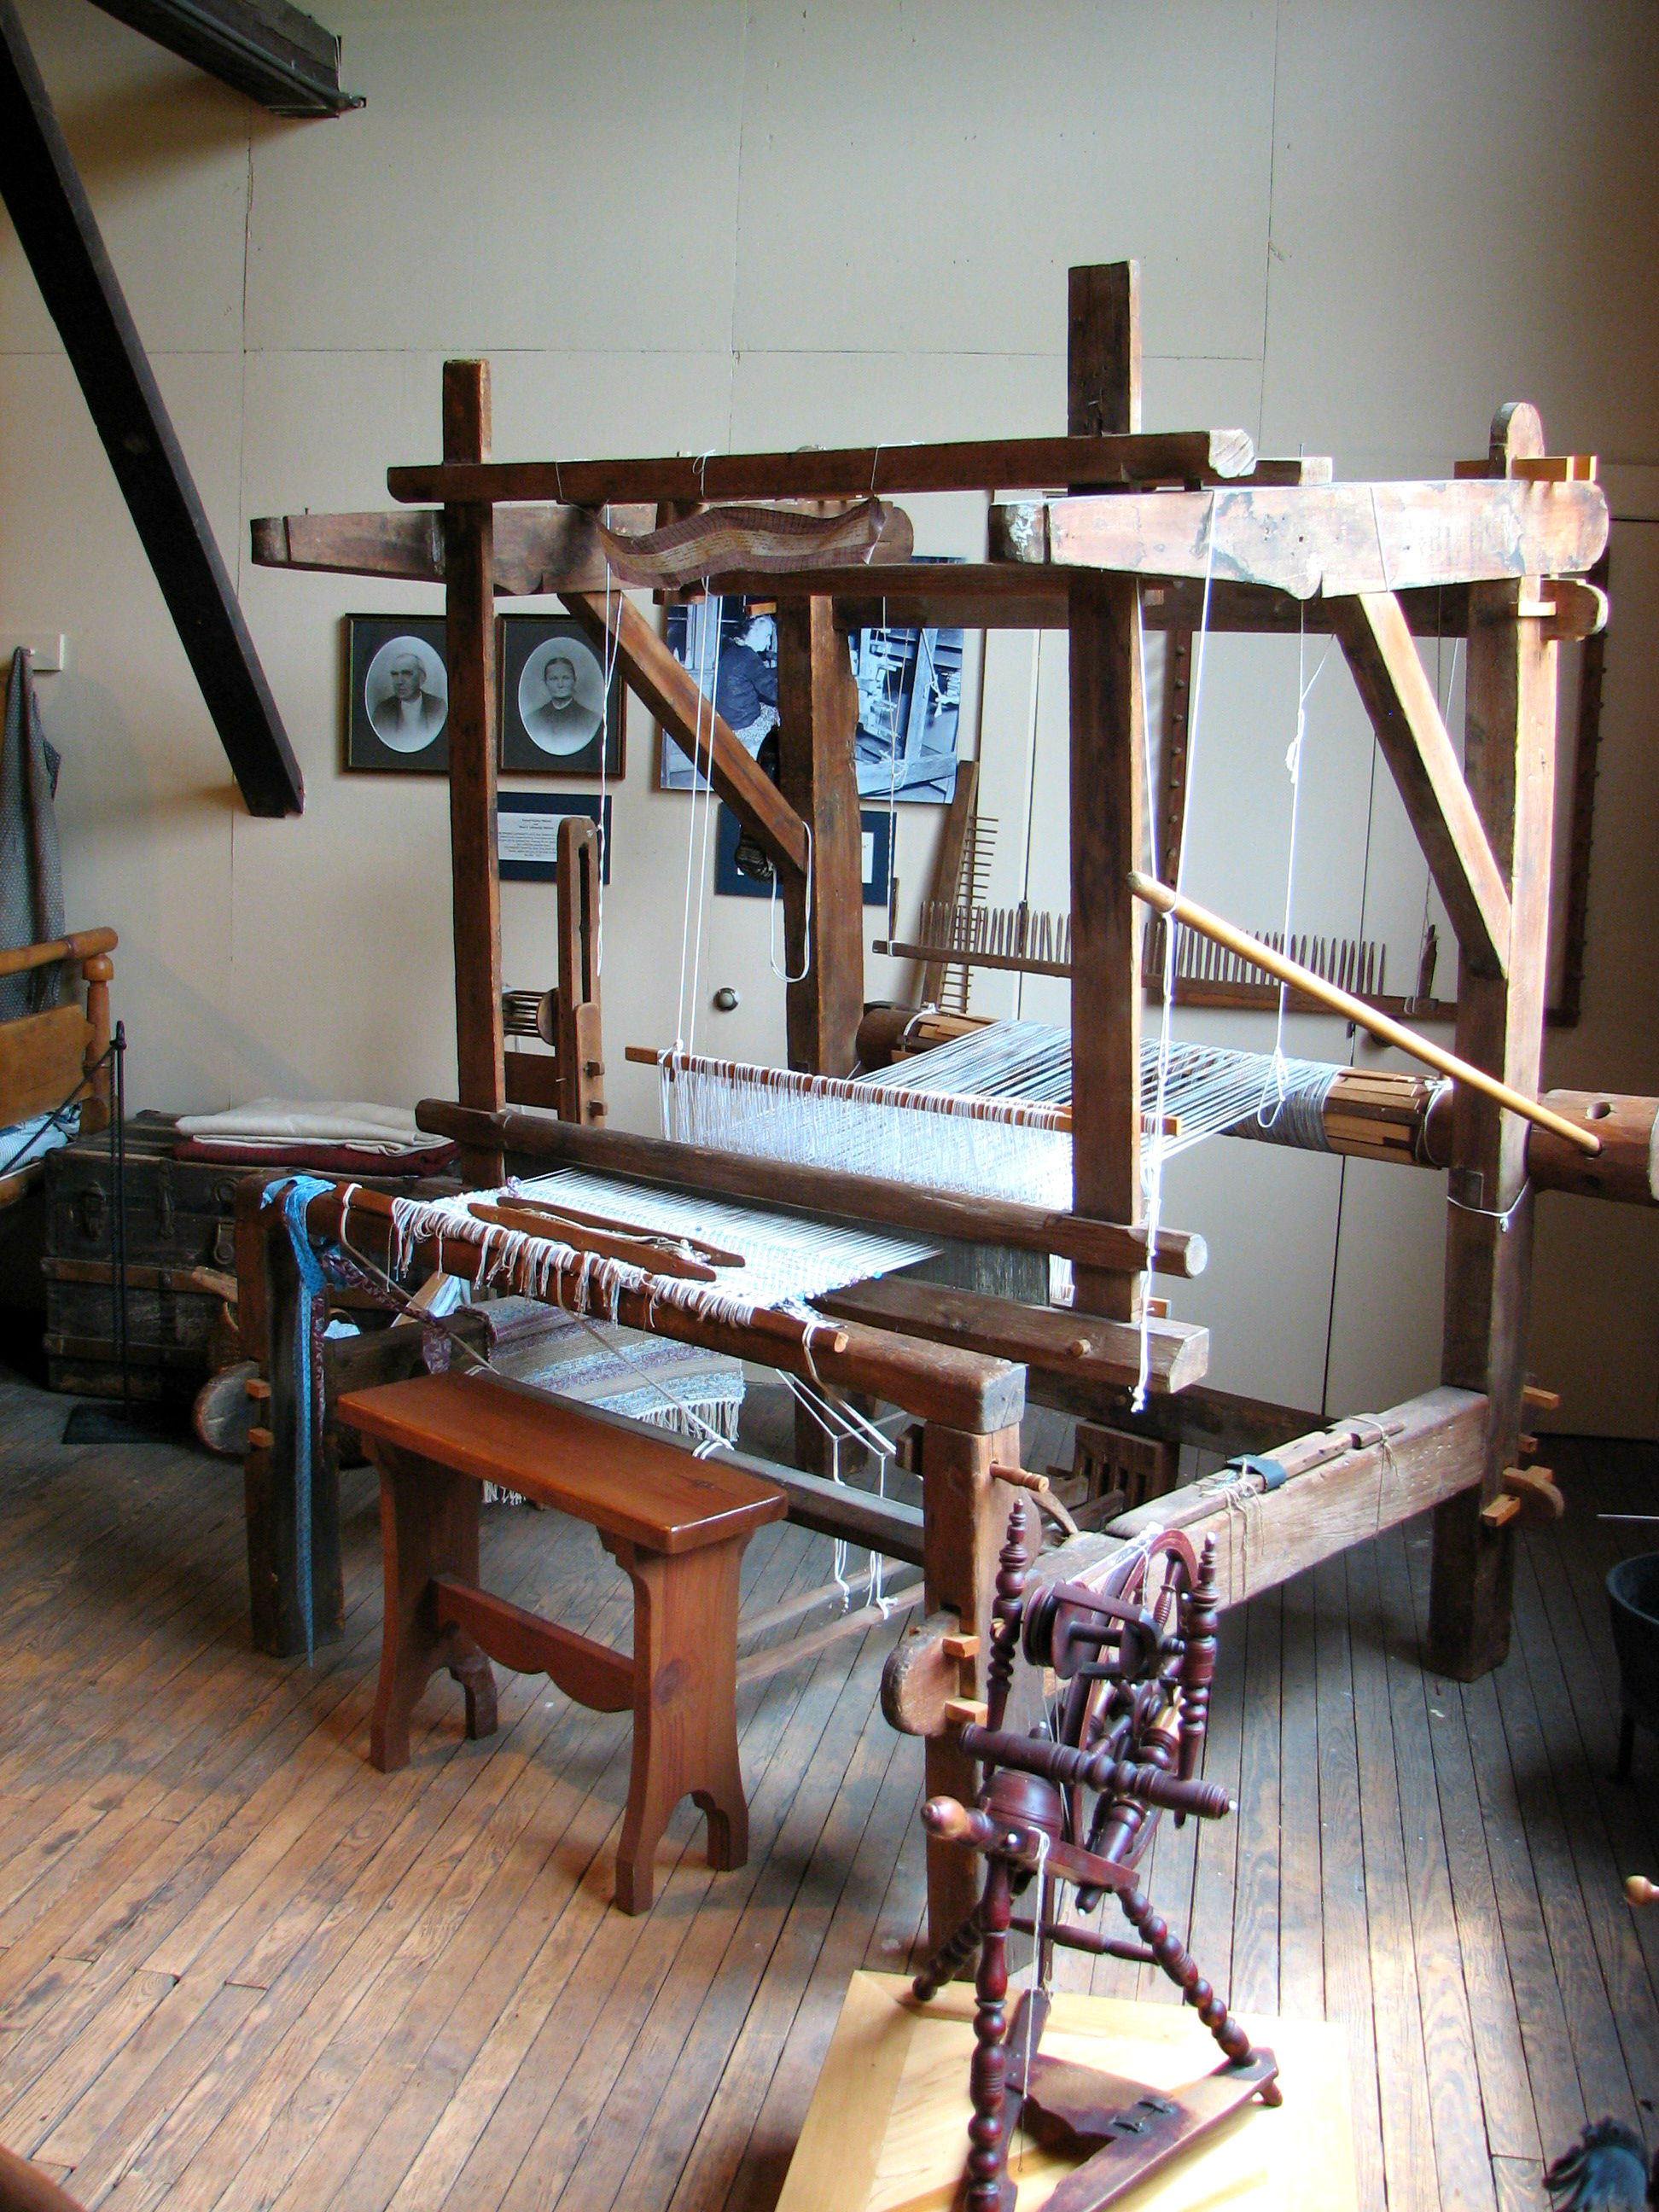 Vintage hand loom and small spinning wheel on display